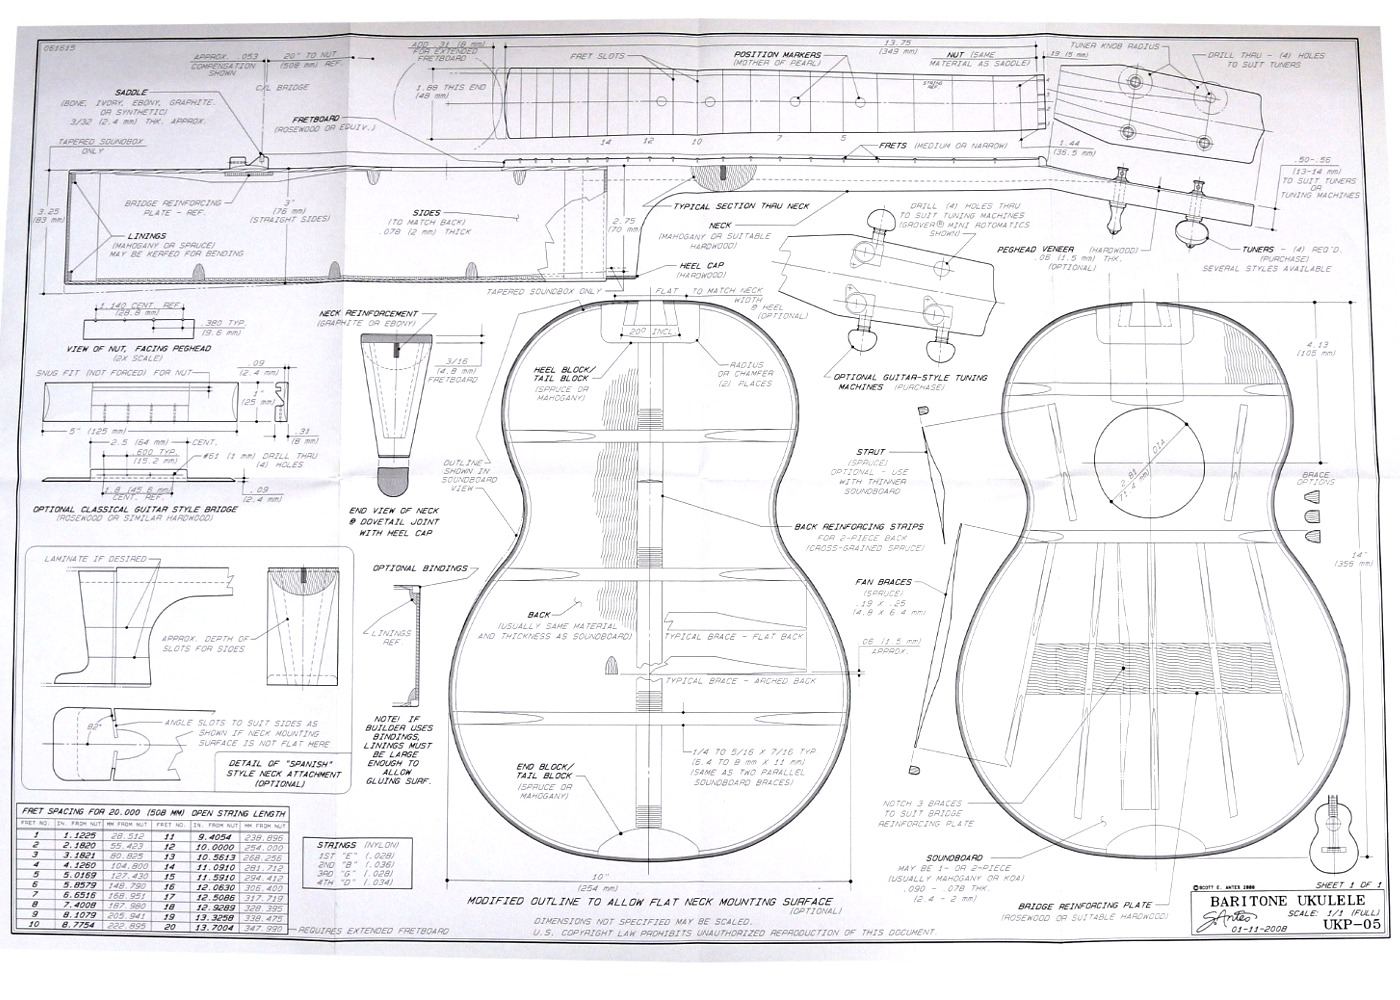 Full size blueprint for baritone ukulele 20 inch scale for Blueprint scale